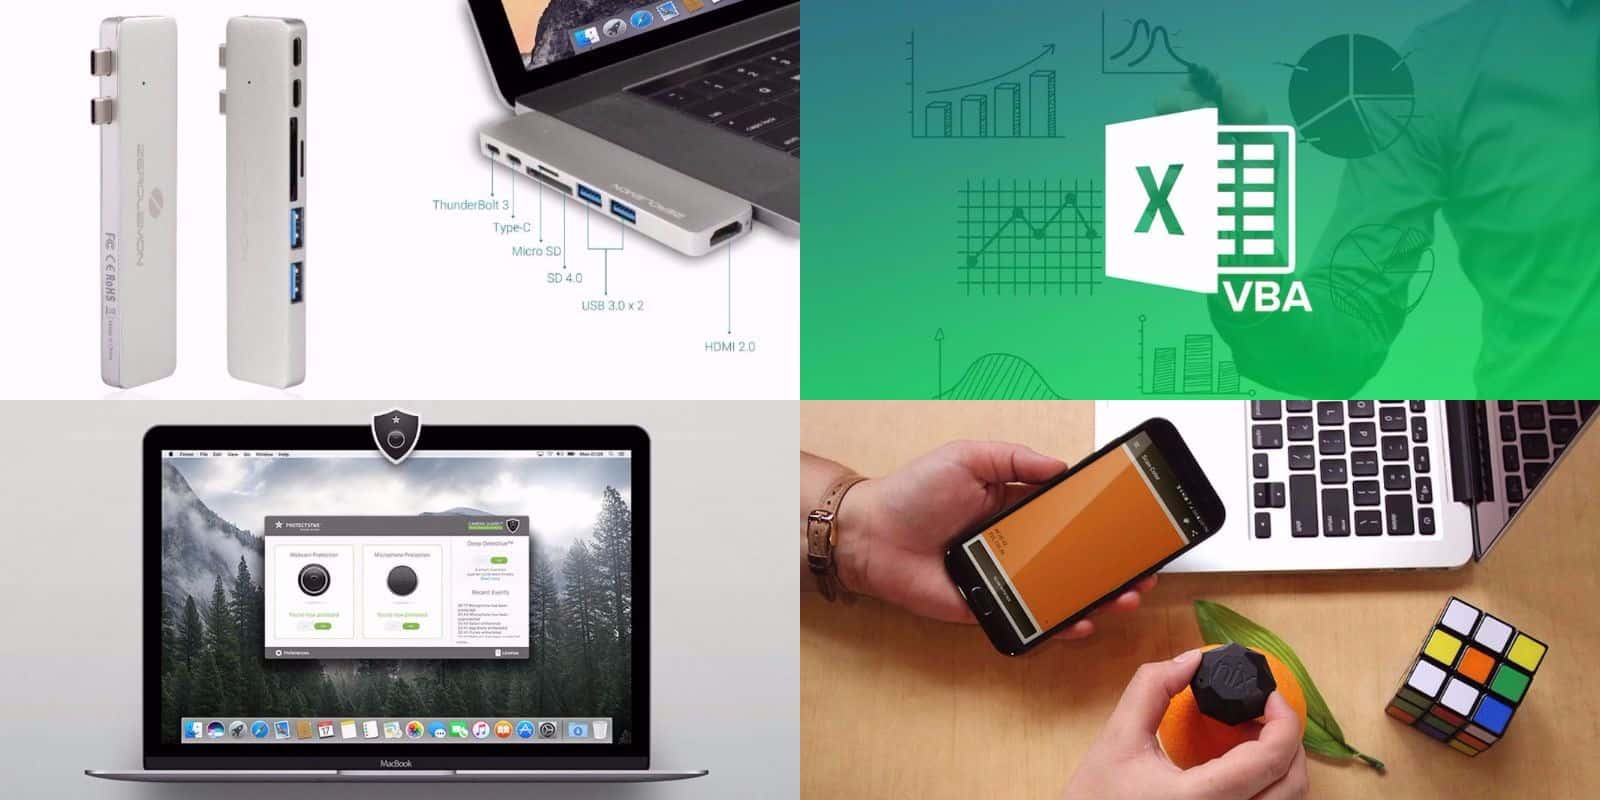 Instantly improve your Macbook's connectivity, security, and more.